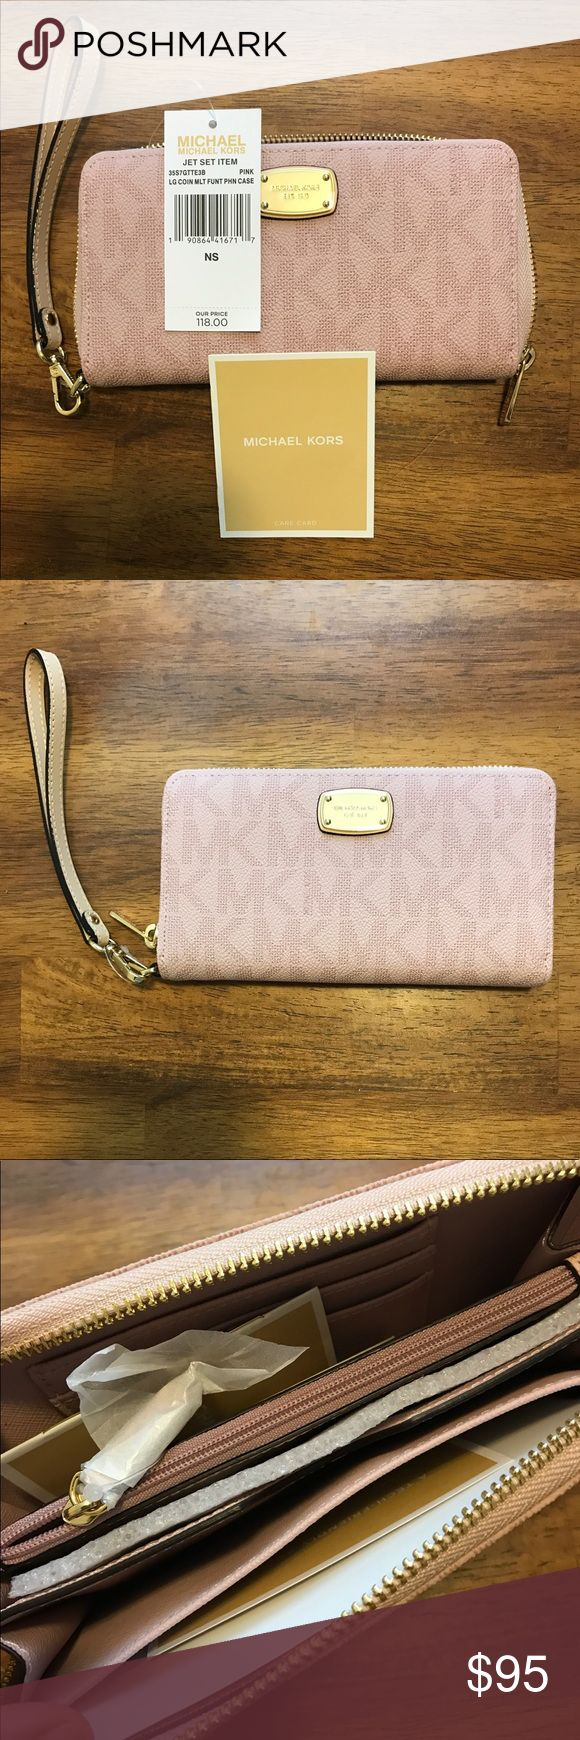 Michael Kors Jet Set Pink Phone Case Wristlet Michael Kors Jet Set Pink Large Coin Multifunction Phone Case Wristlet/Wallet Michael Kors Bags Wallets